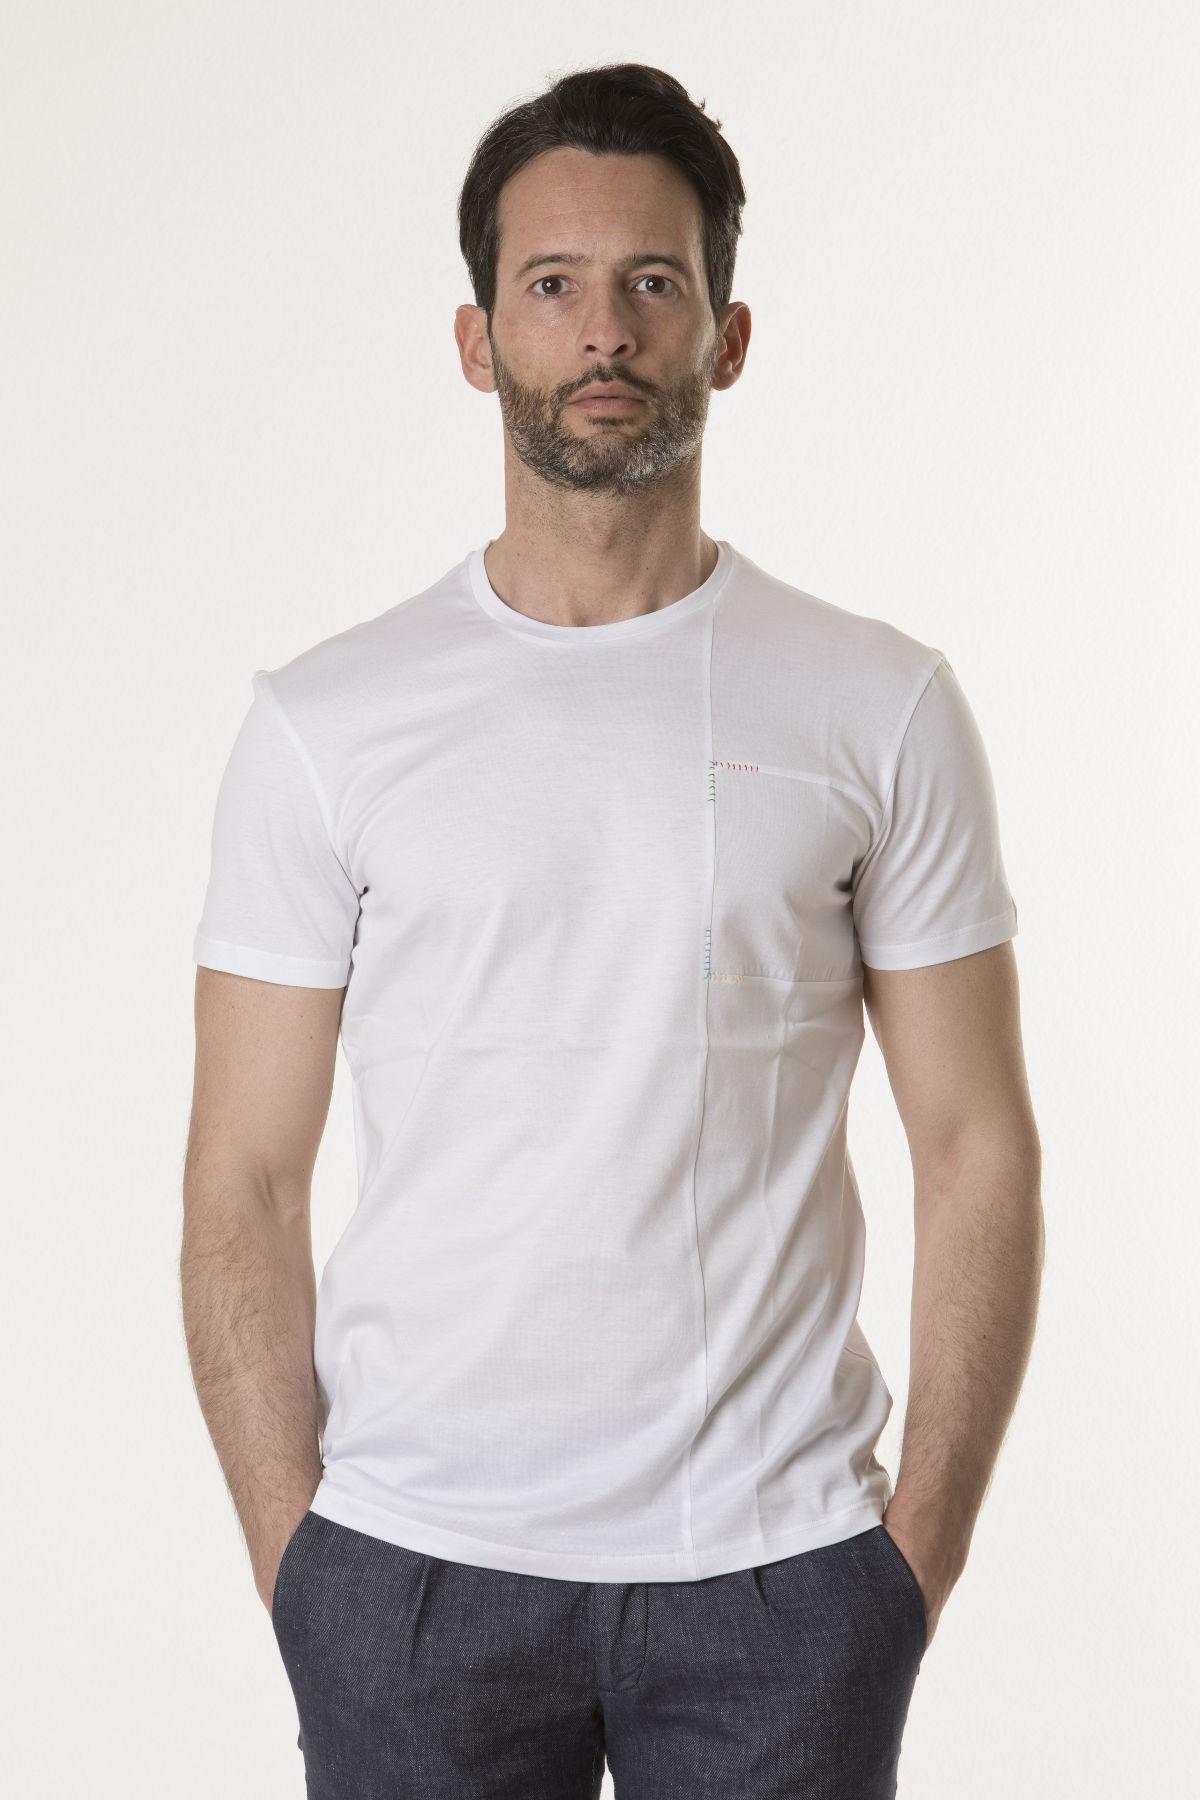 T-shirt for man PMDS S/S18